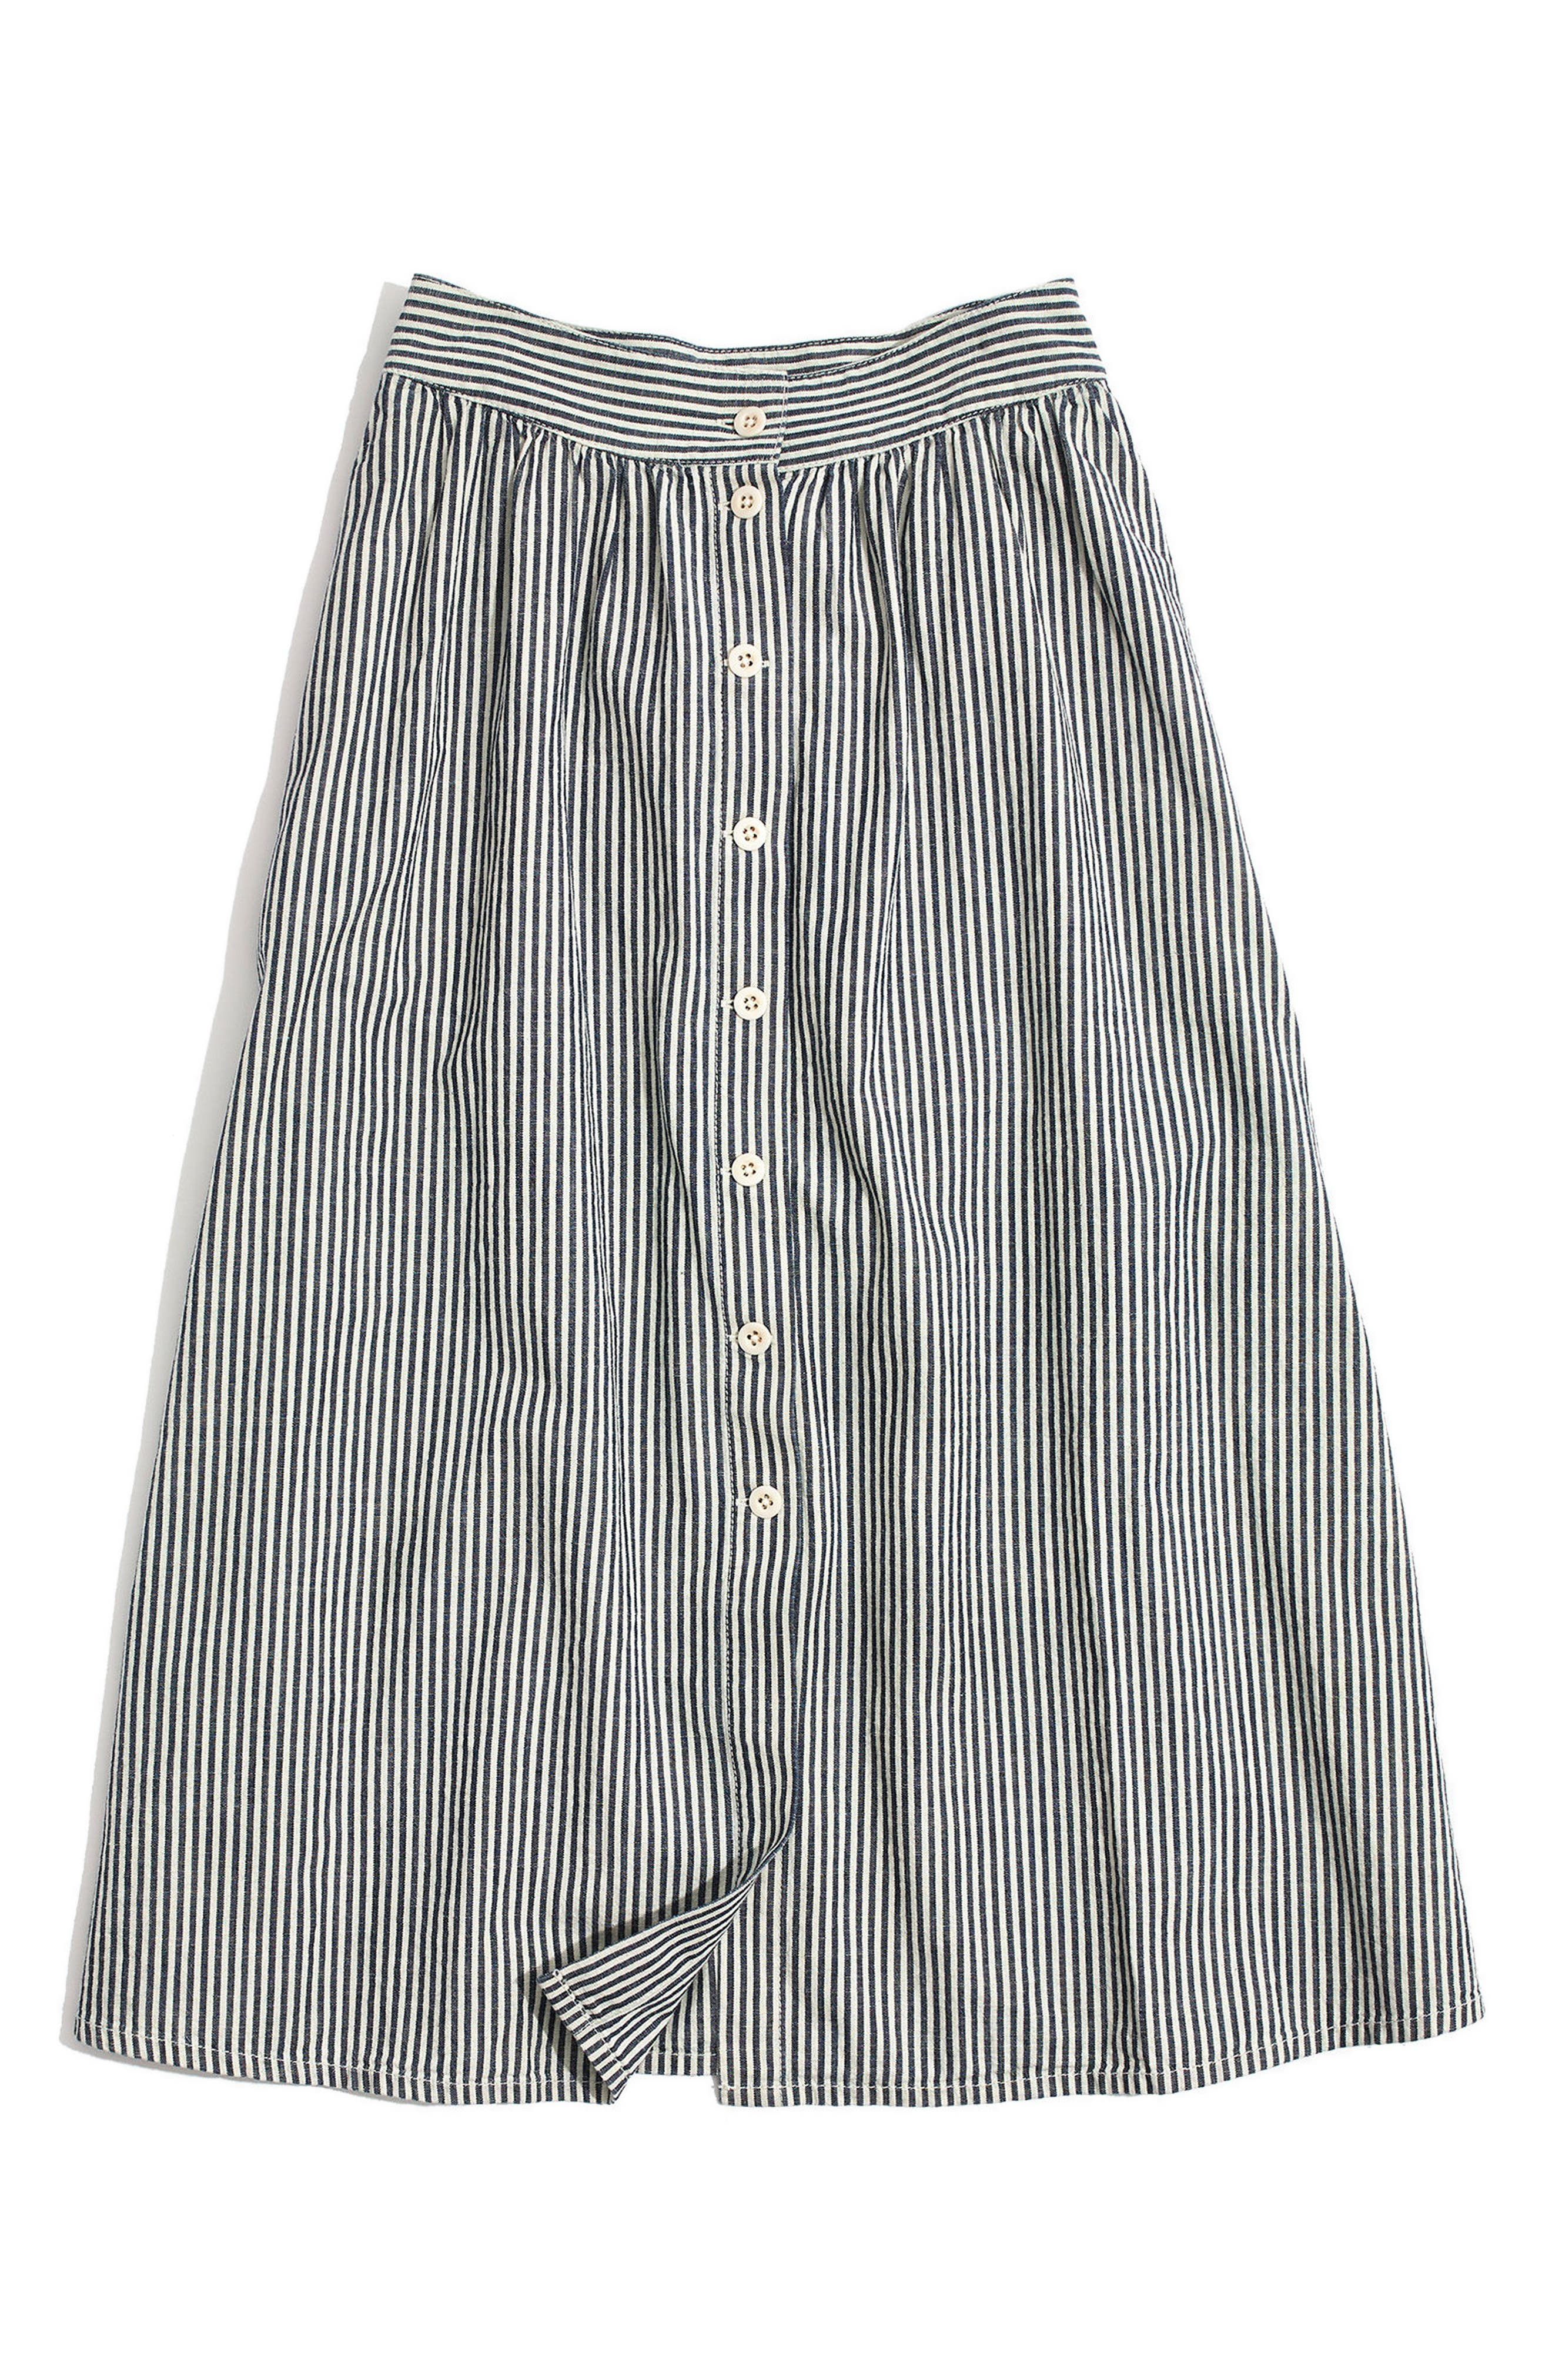 Palisade Chambray Stripe Button Front Midi Skirt,                             Alternate thumbnail 3, color,                             Chambray Stripe